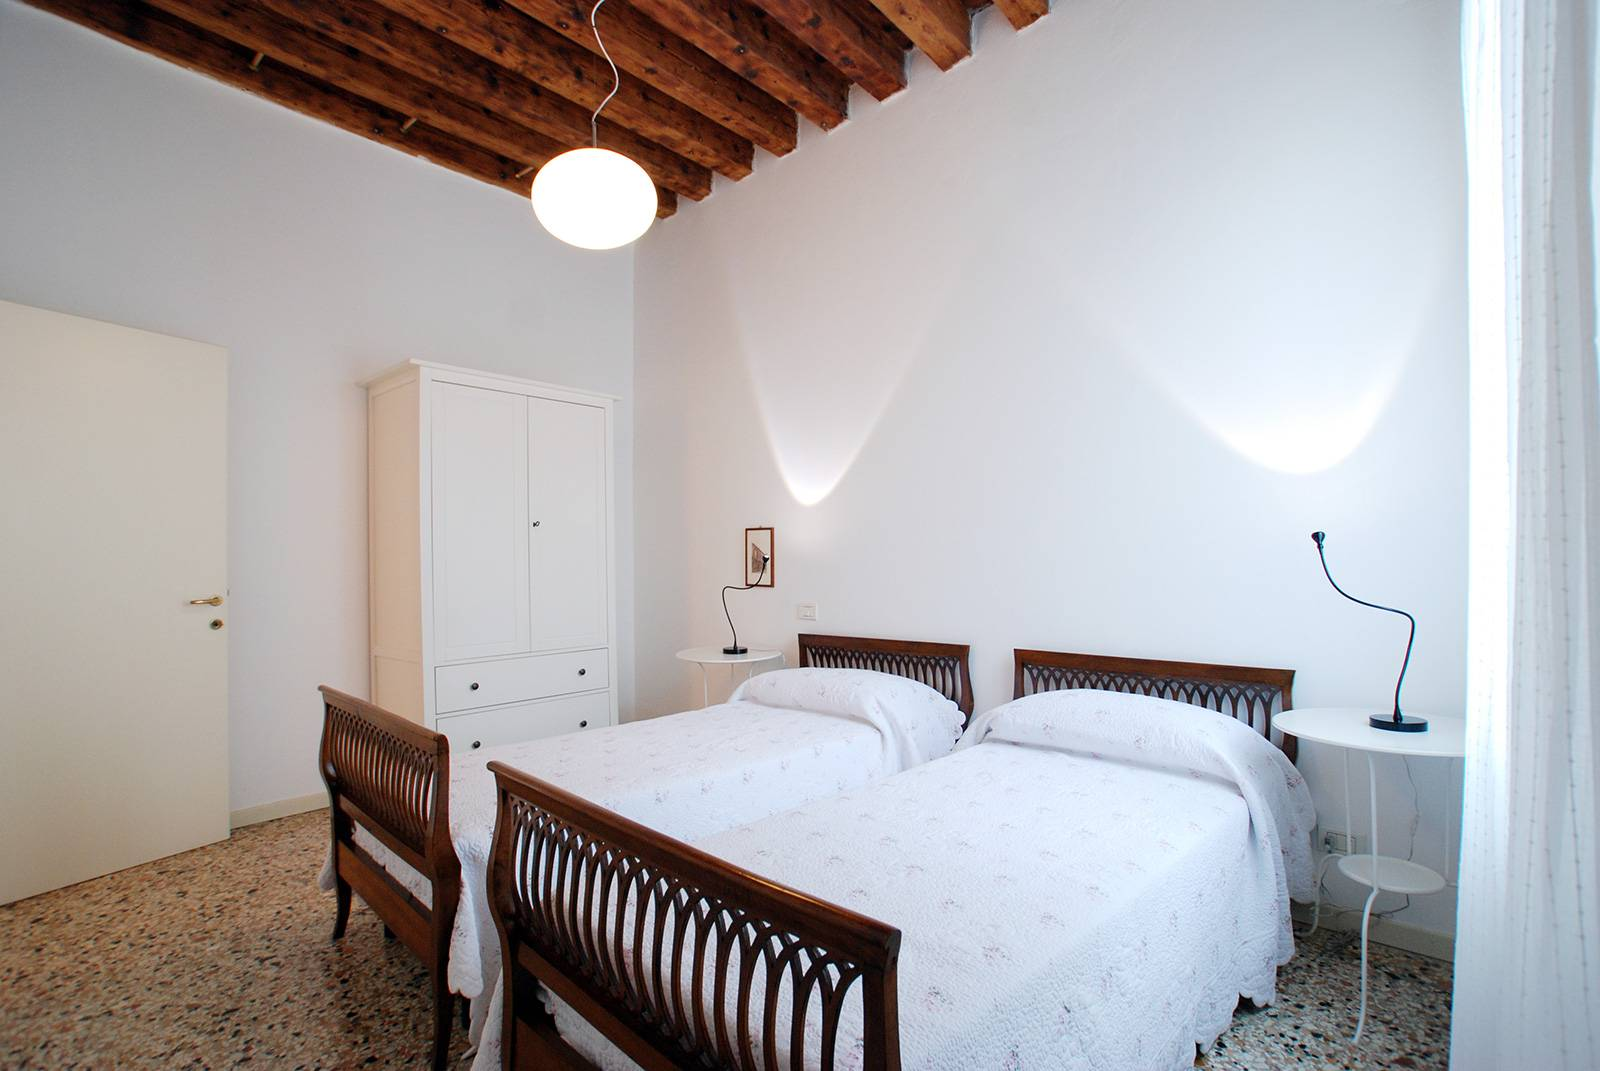 also the second bedroom can be used with separate bed or as a double bed